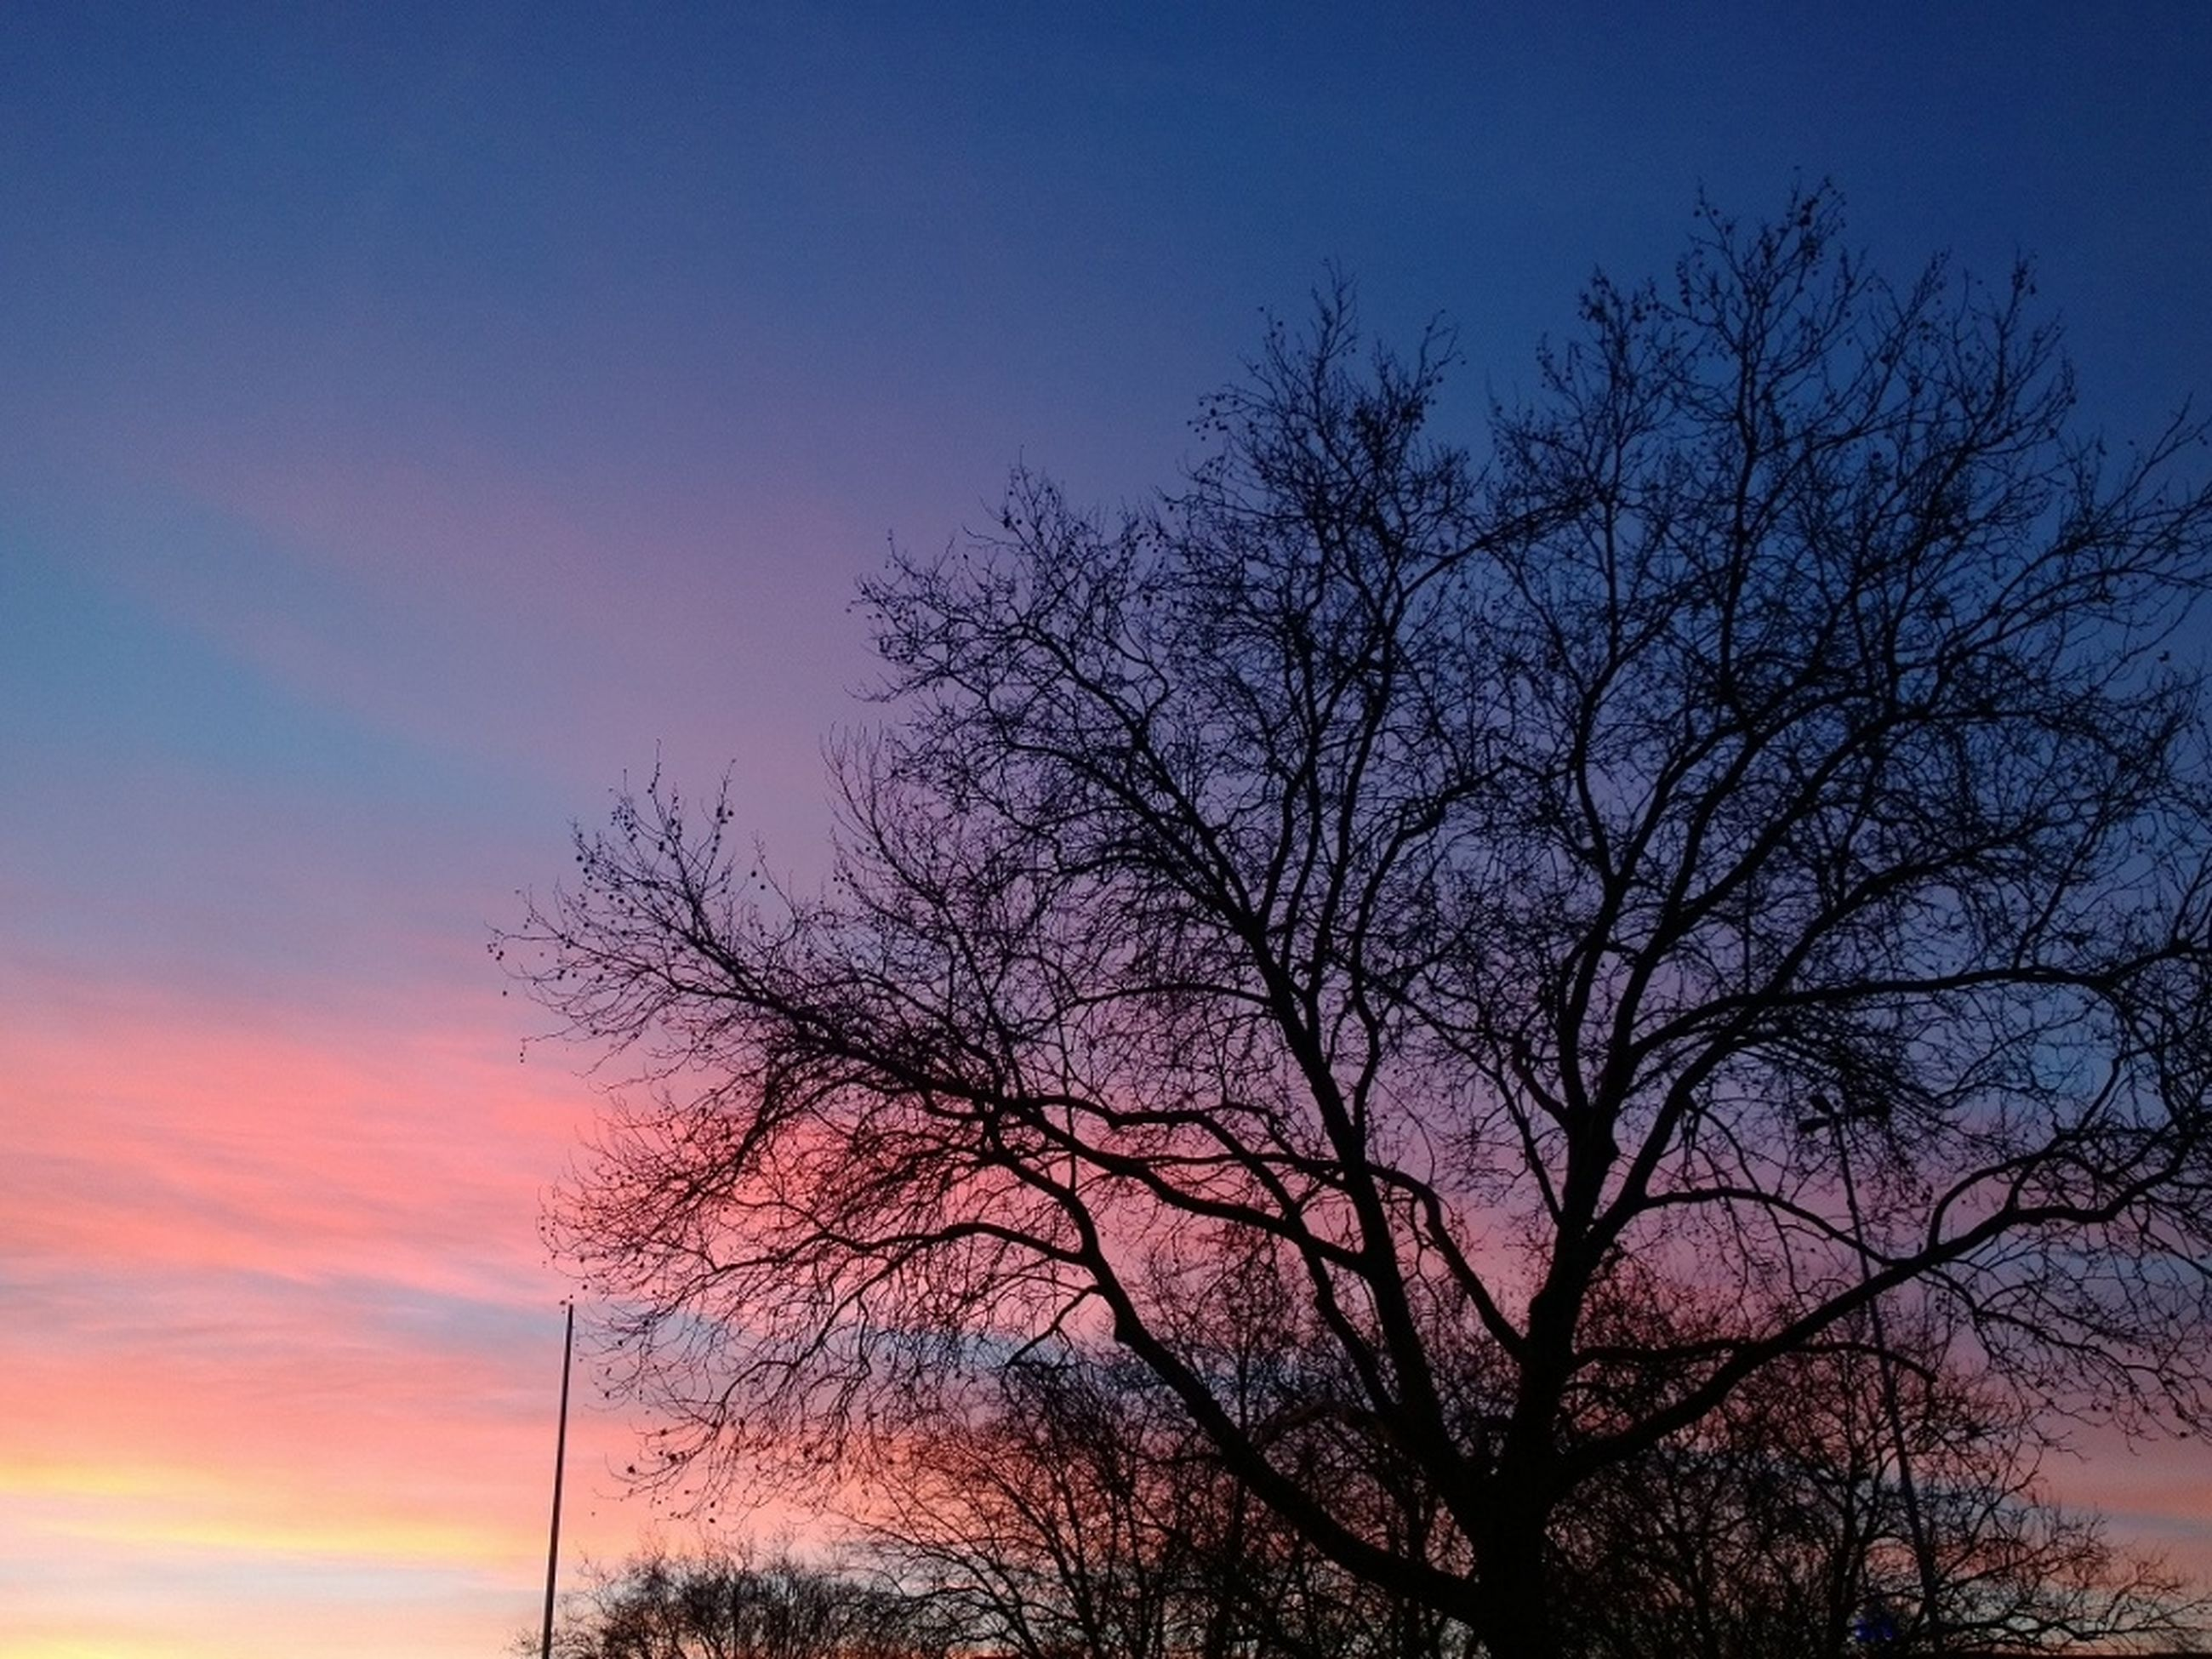 bare tree, silhouette, tree, low angle view, sunset, tranquility, branch, sky, beauty in nature, scenics, tranquil scene, nature, blue, dusk, orange color, idyllic, outdoors, no people, cloud - sky, clear sky